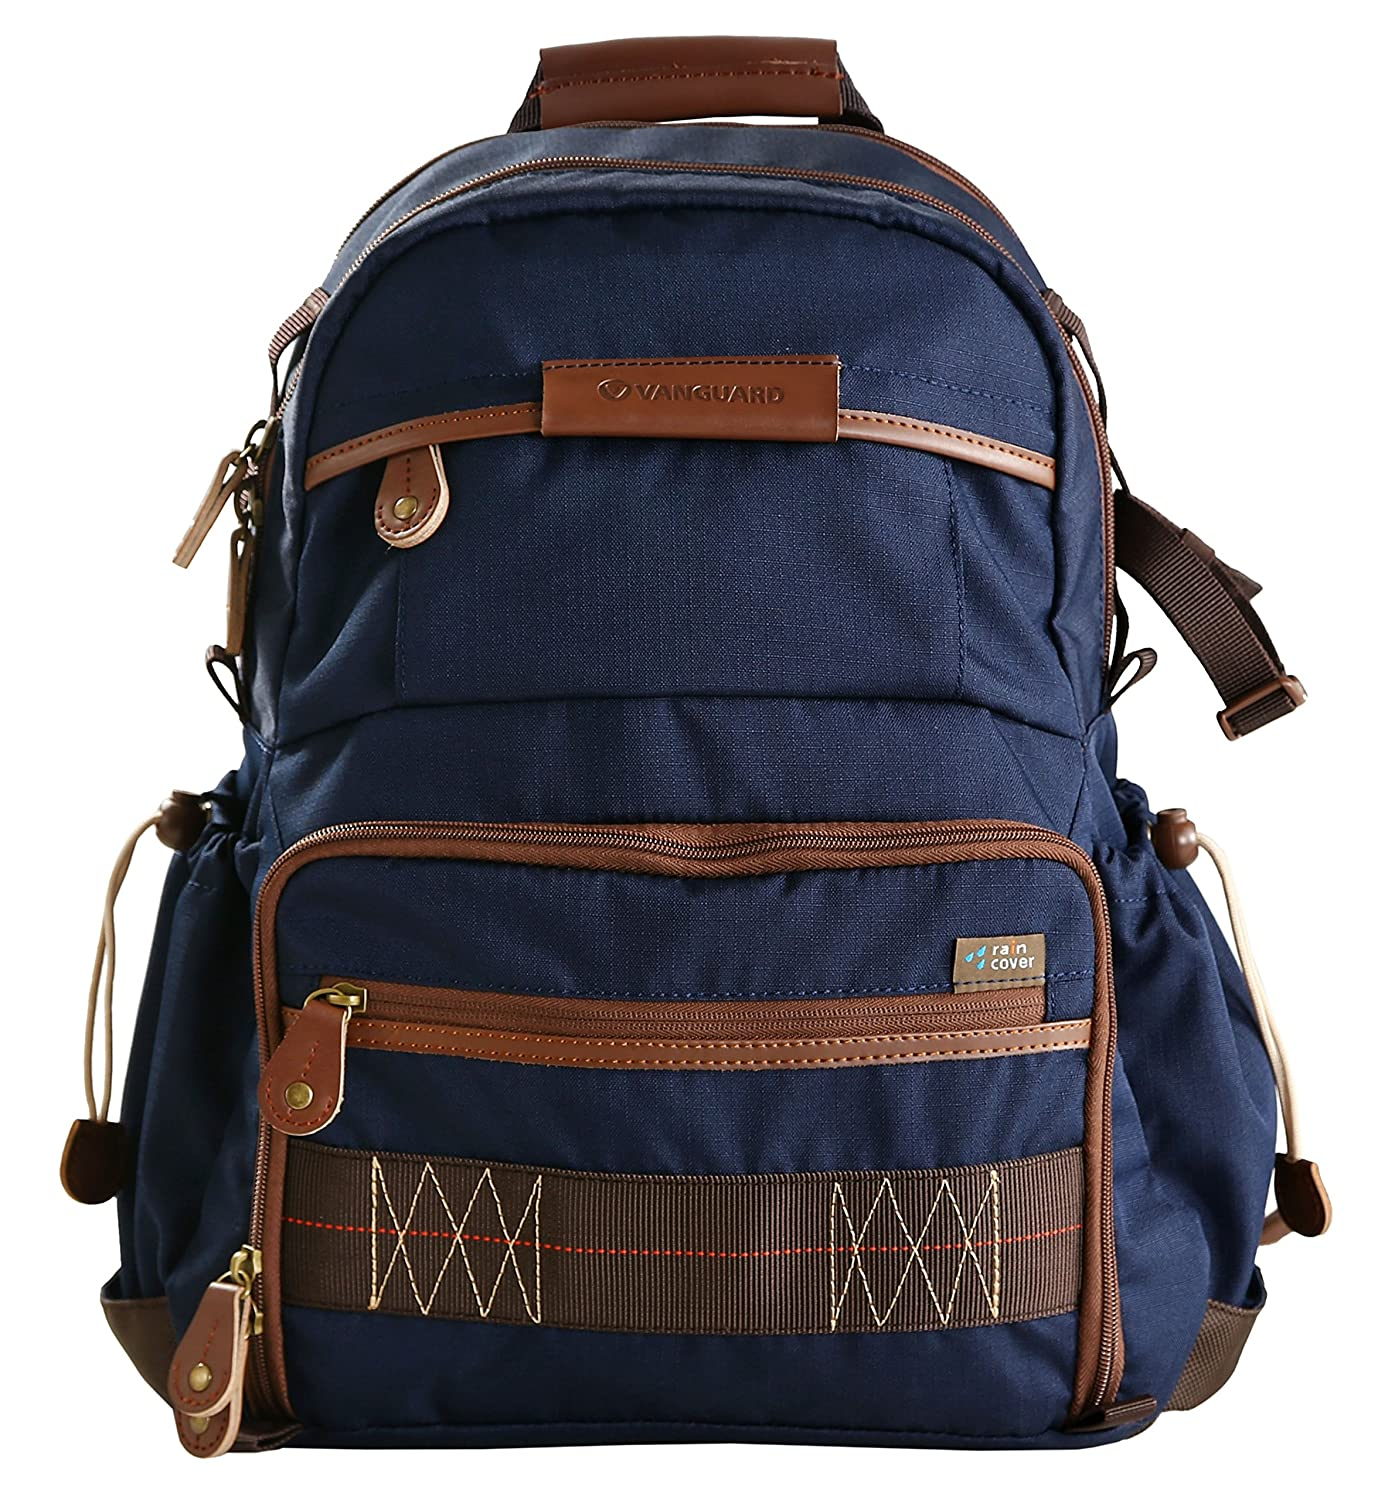 Vanguard Havana 41 Backpack (Blue) for Sony, Nikon, Canon, Fujifilm Mirrorless, Compact System Camera (CSC), DSLR, Travel